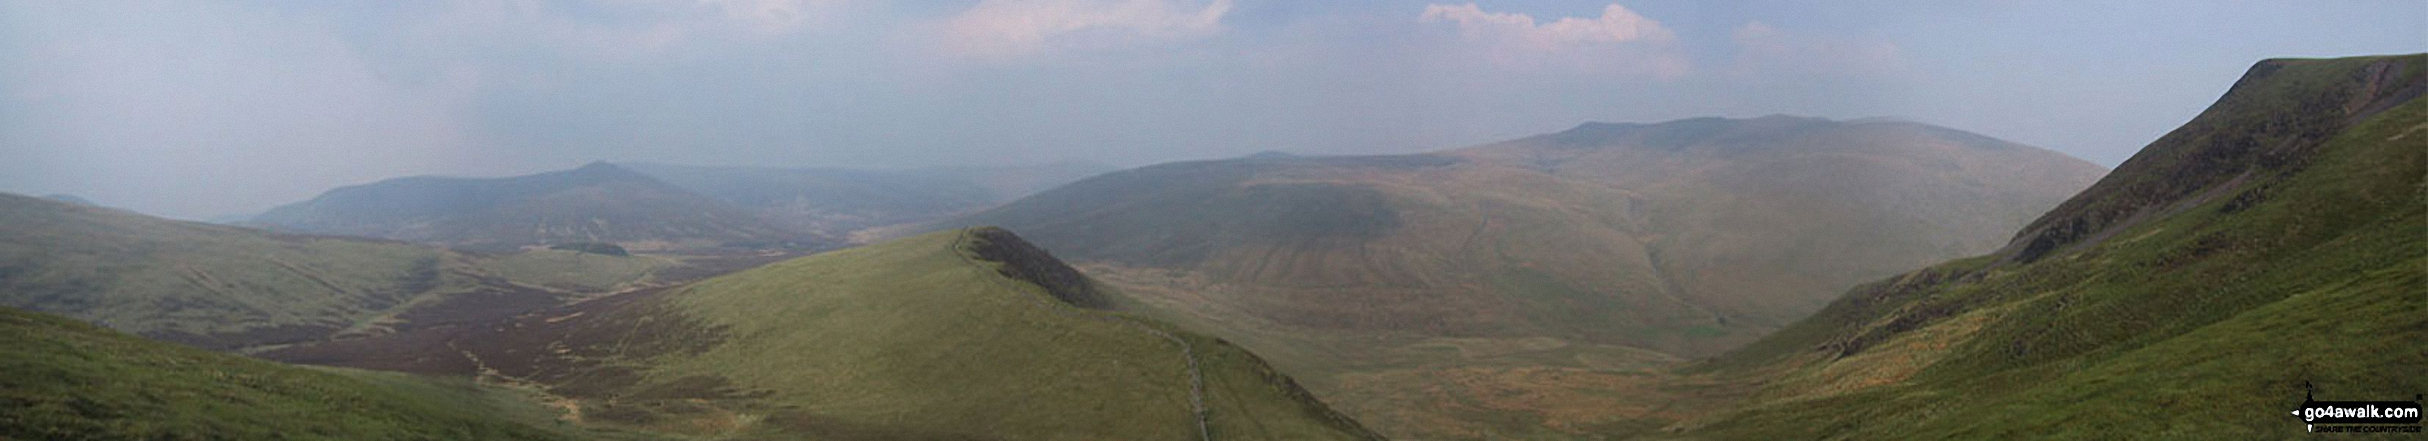 *Great Calva, Burnt Horse, Blencathra (Saddleback) and Lonscale Crags from (North of) Lonscale Fell